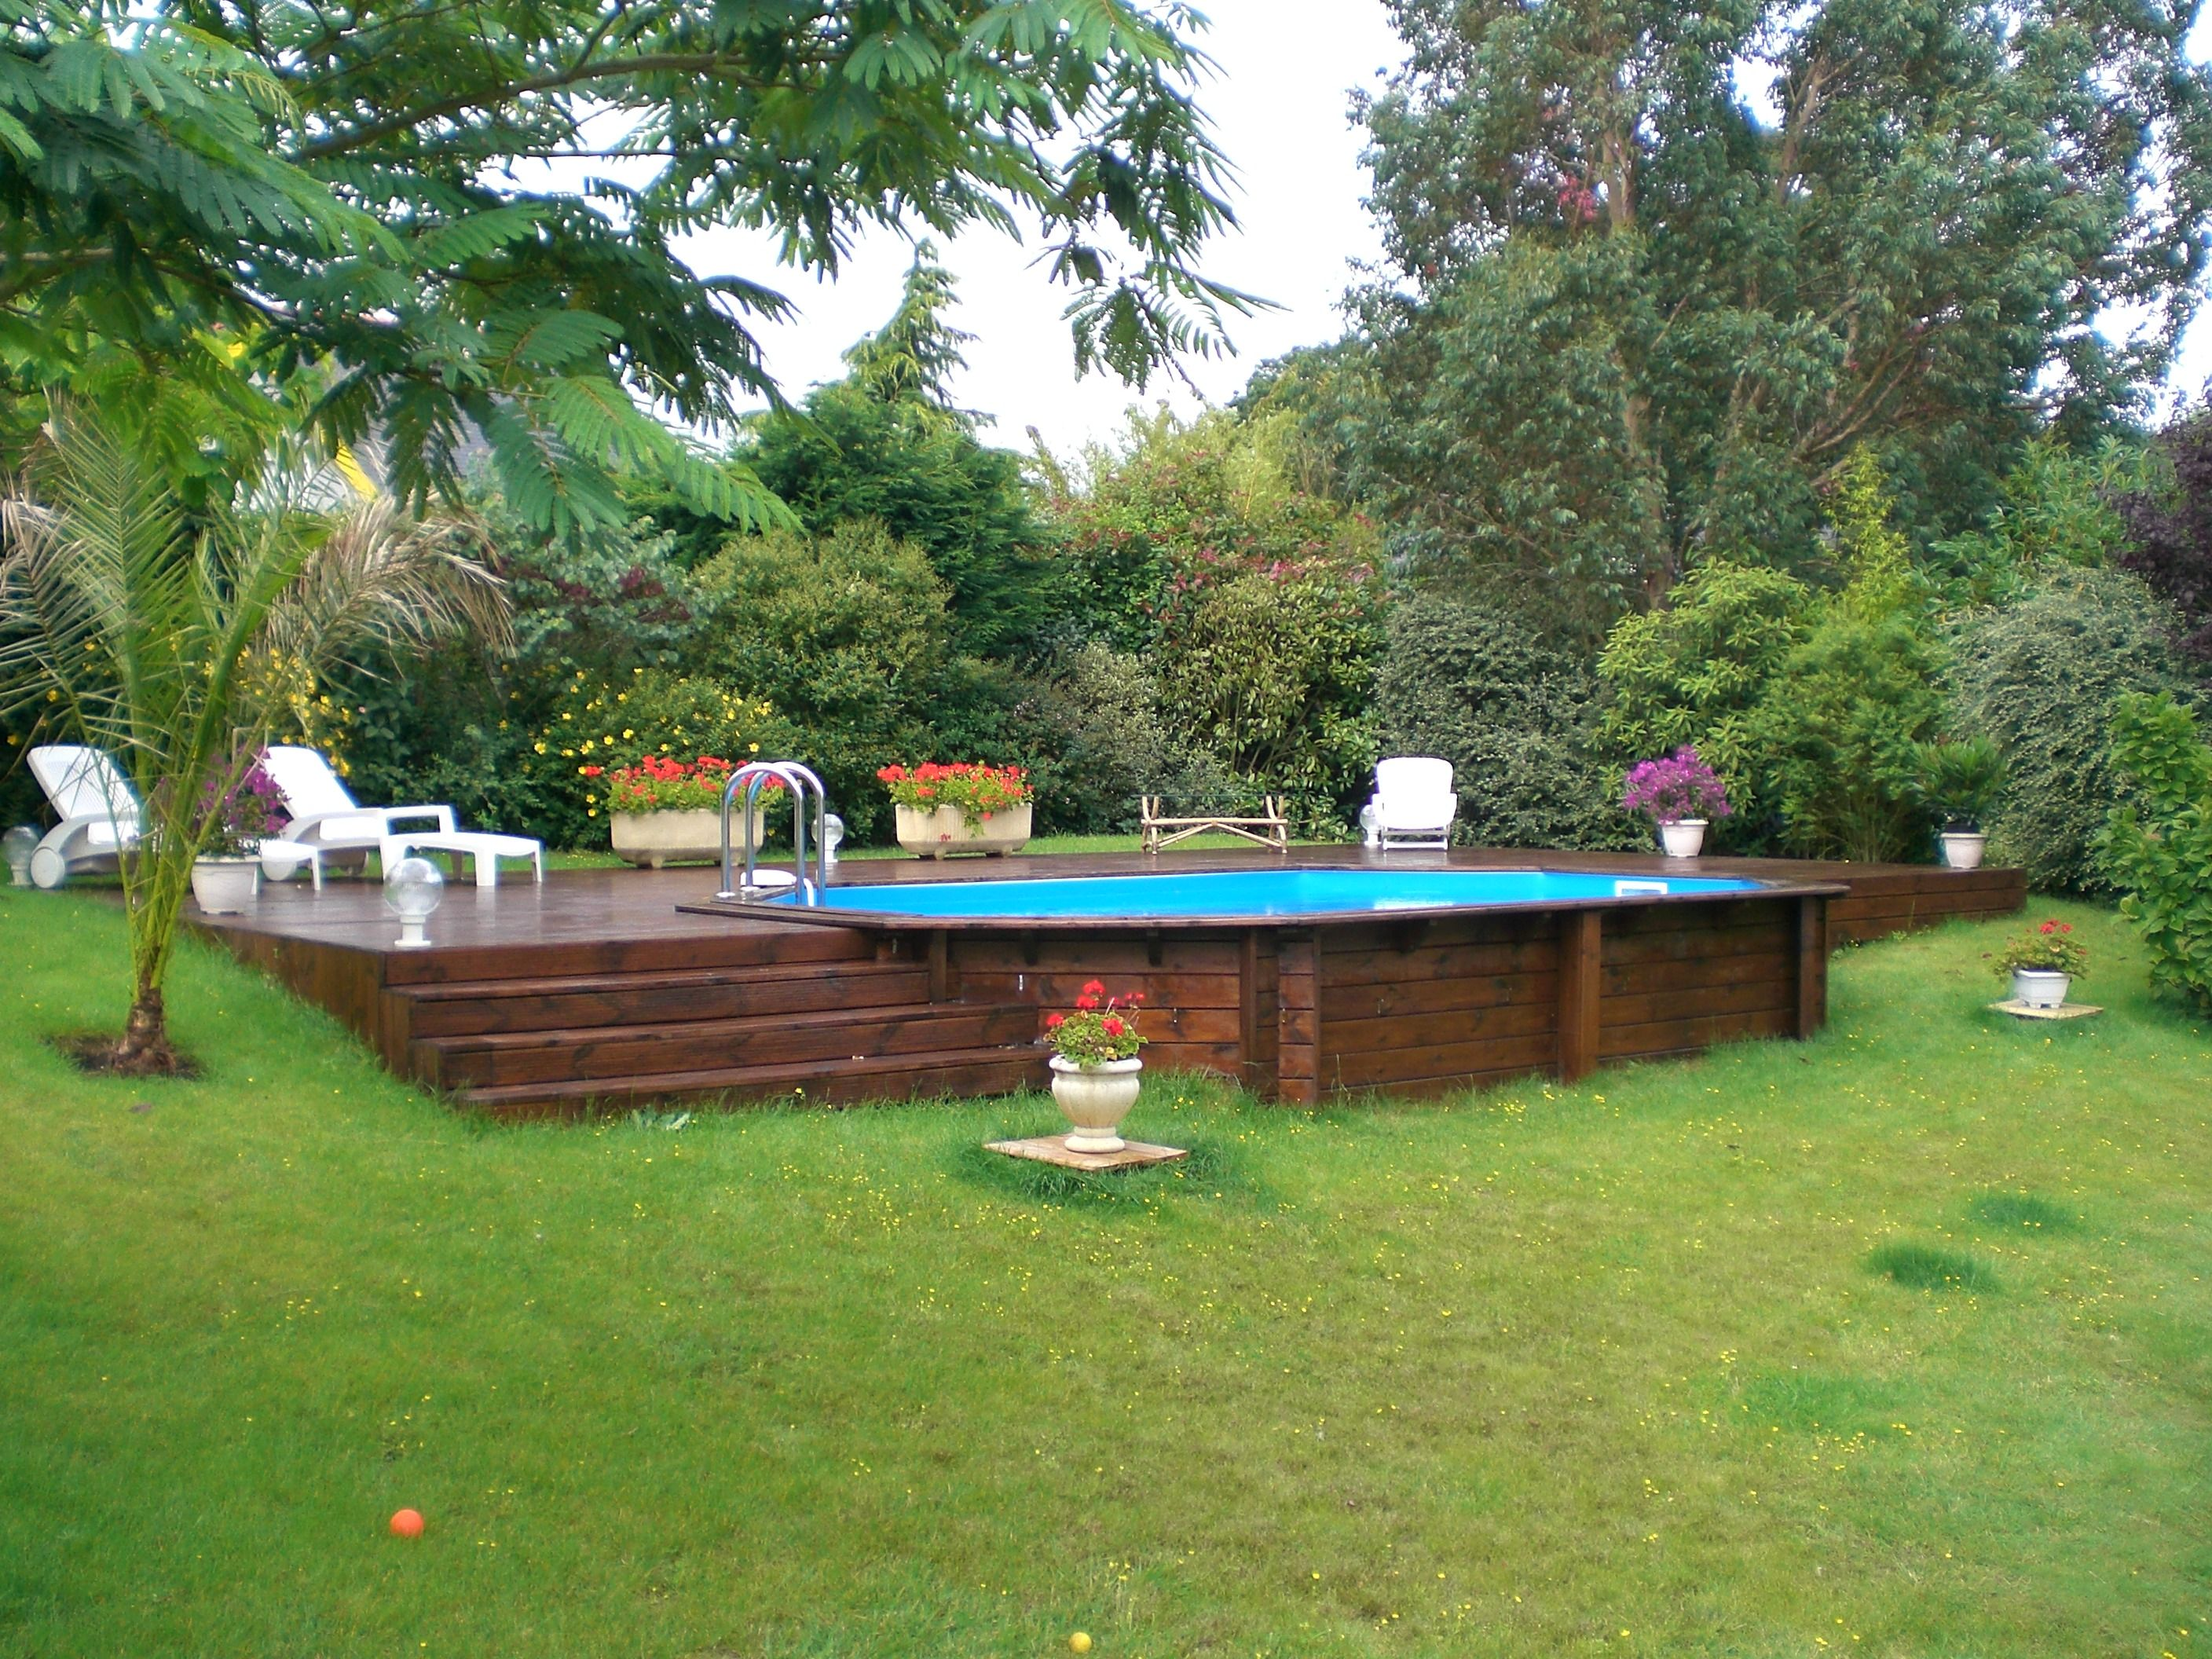 Piscine hors sol en bois semi enterr e sur terrain en pente piscine pinterest backyard for Piscine semi enterree bois